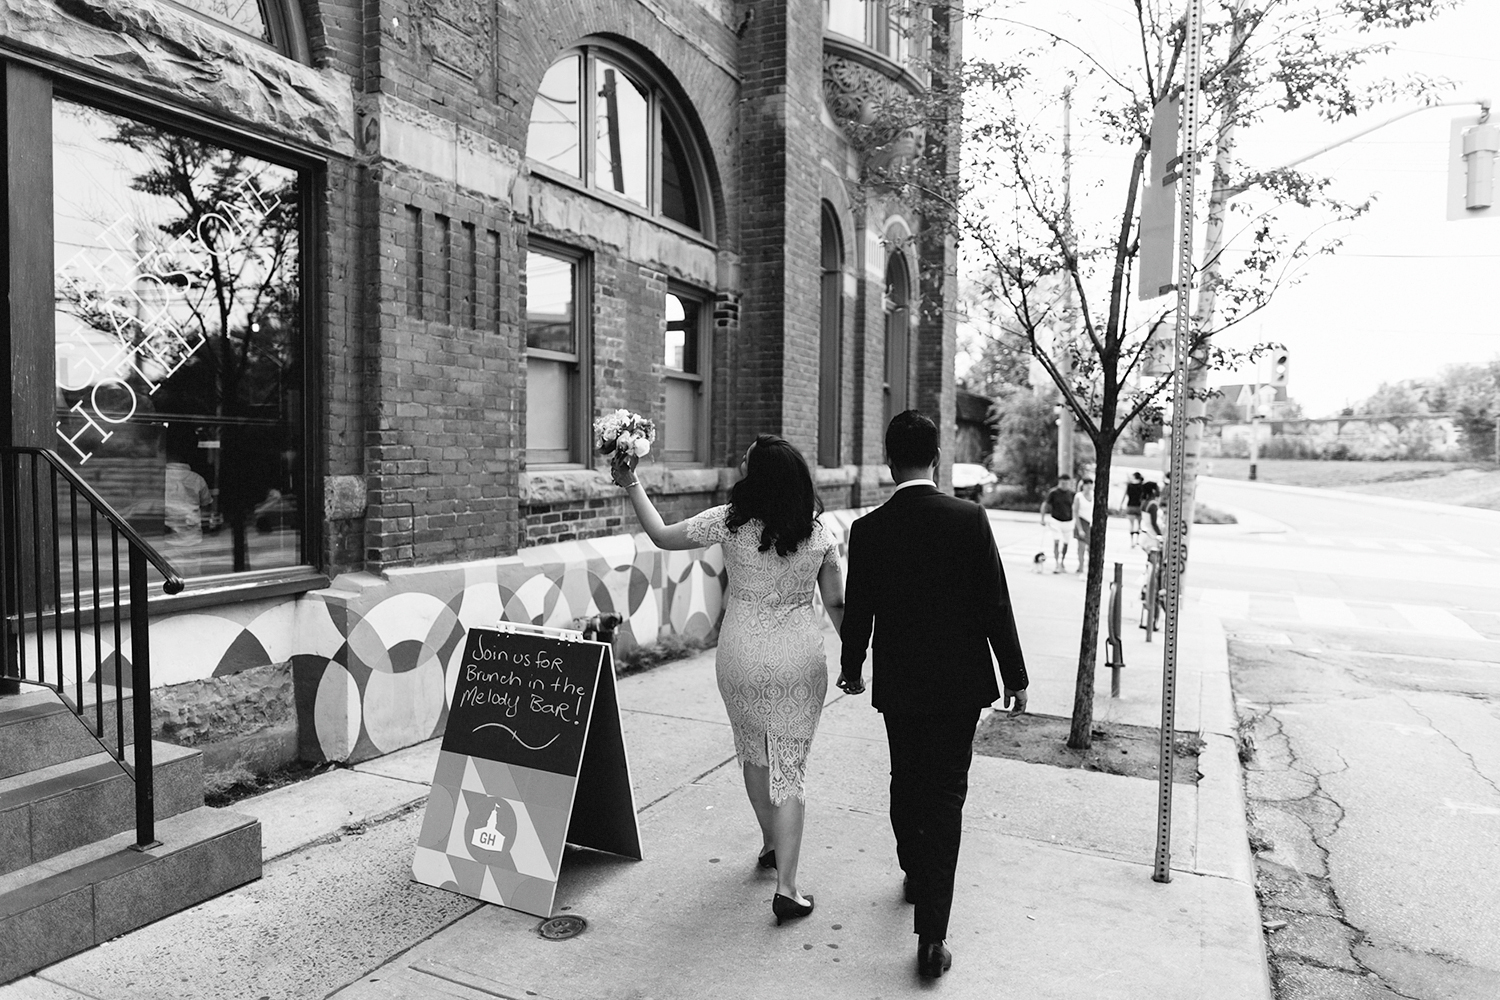 Best-Wedding-Photographers-in-Toronto-Downtown-Urban-Gladstone-Hotel-Venue-Inspiration-Top-Venues-in-Toronto-boutique-hotel-candid-documentary-brunch-wedding-couples-portraits-walking-together-inbetween-moments-bride-waving.jpg